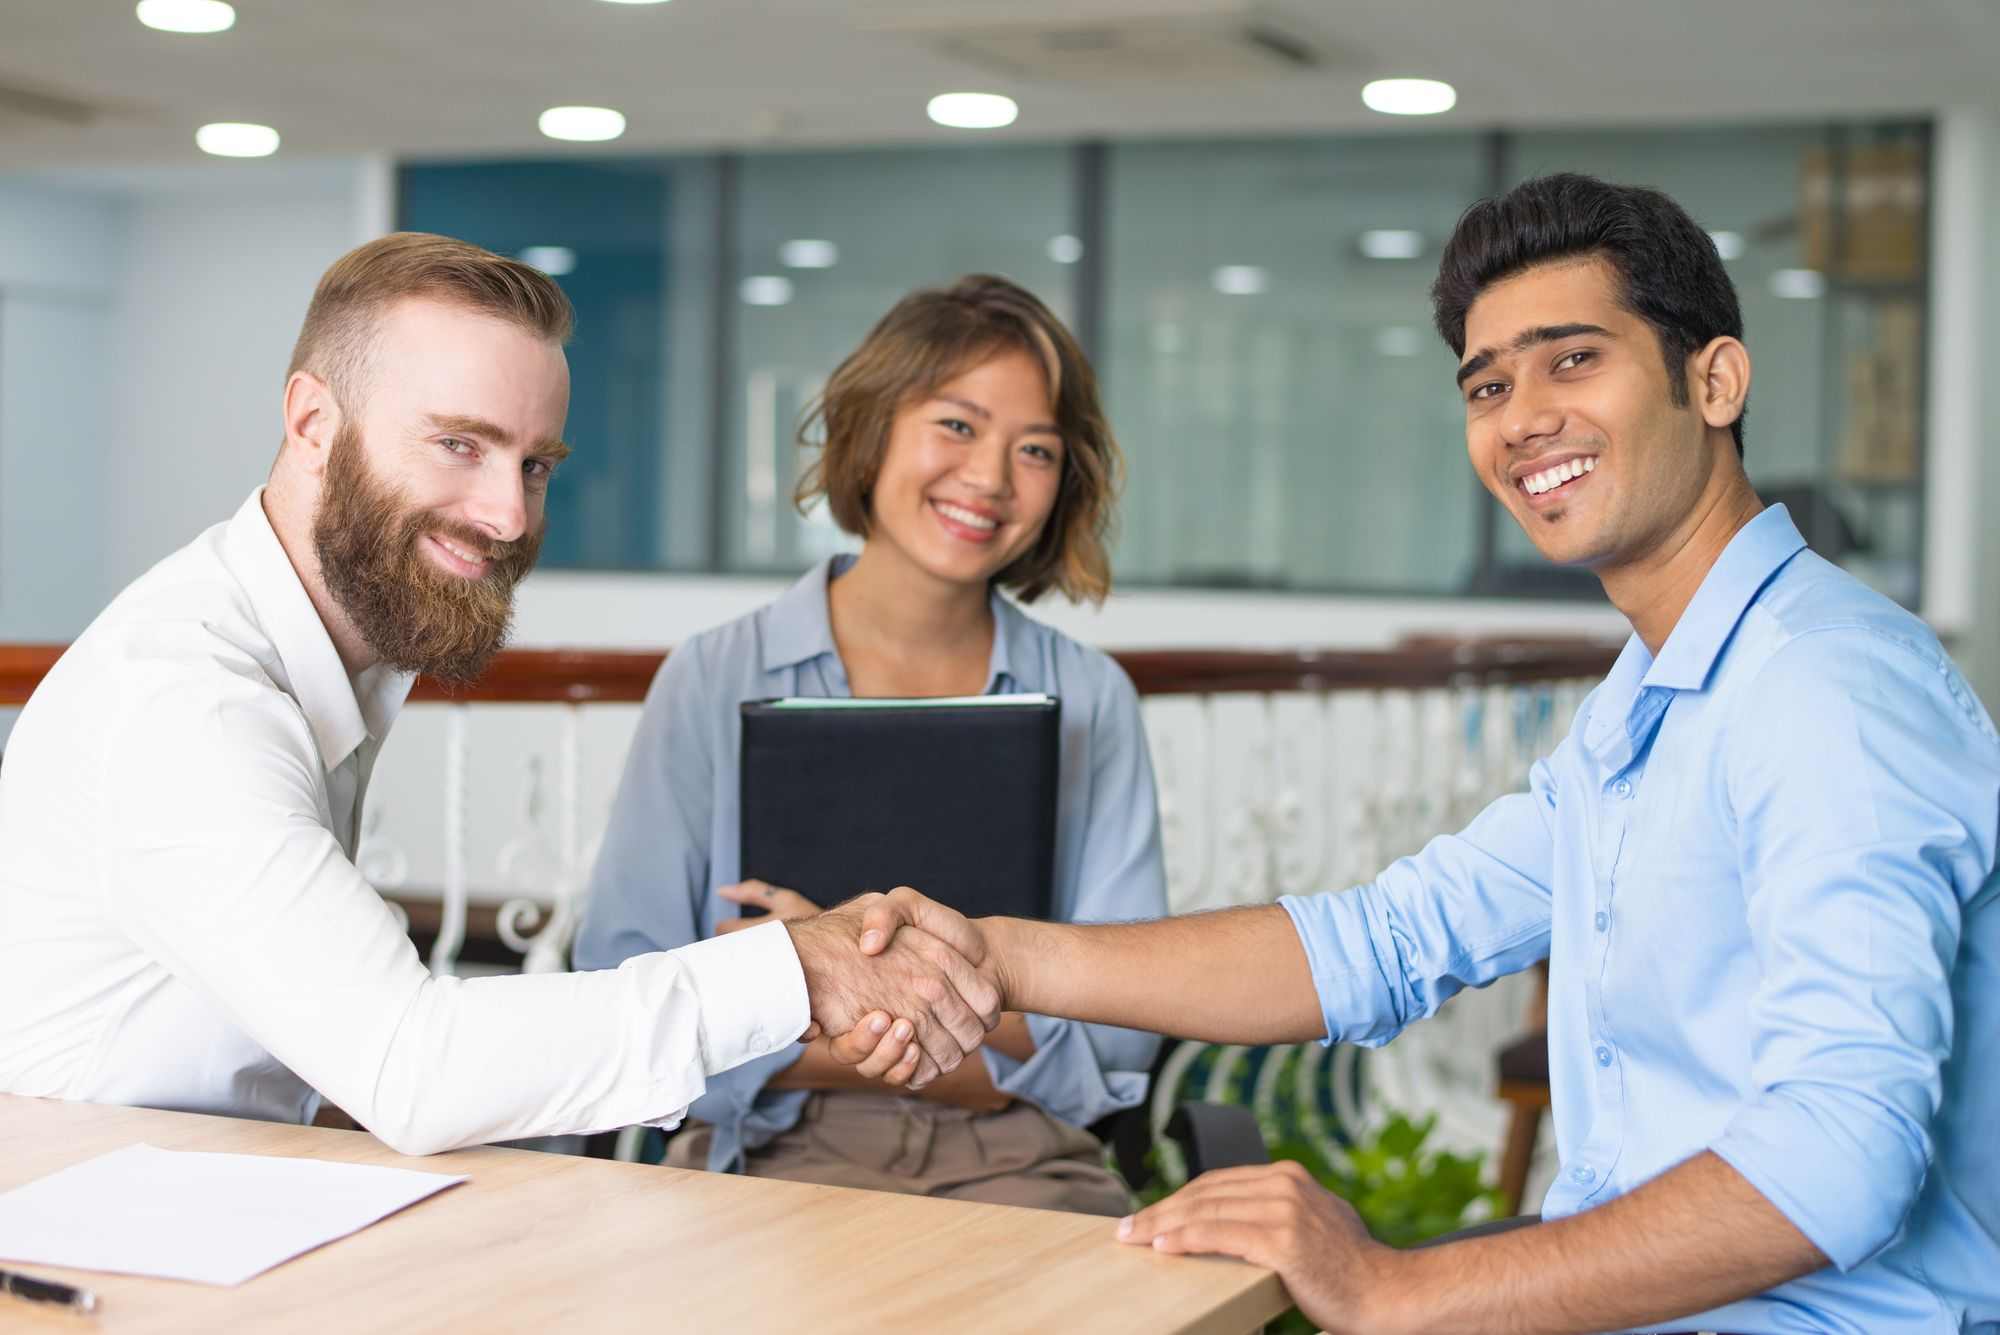 How To Make A Great First Impression In An Interview